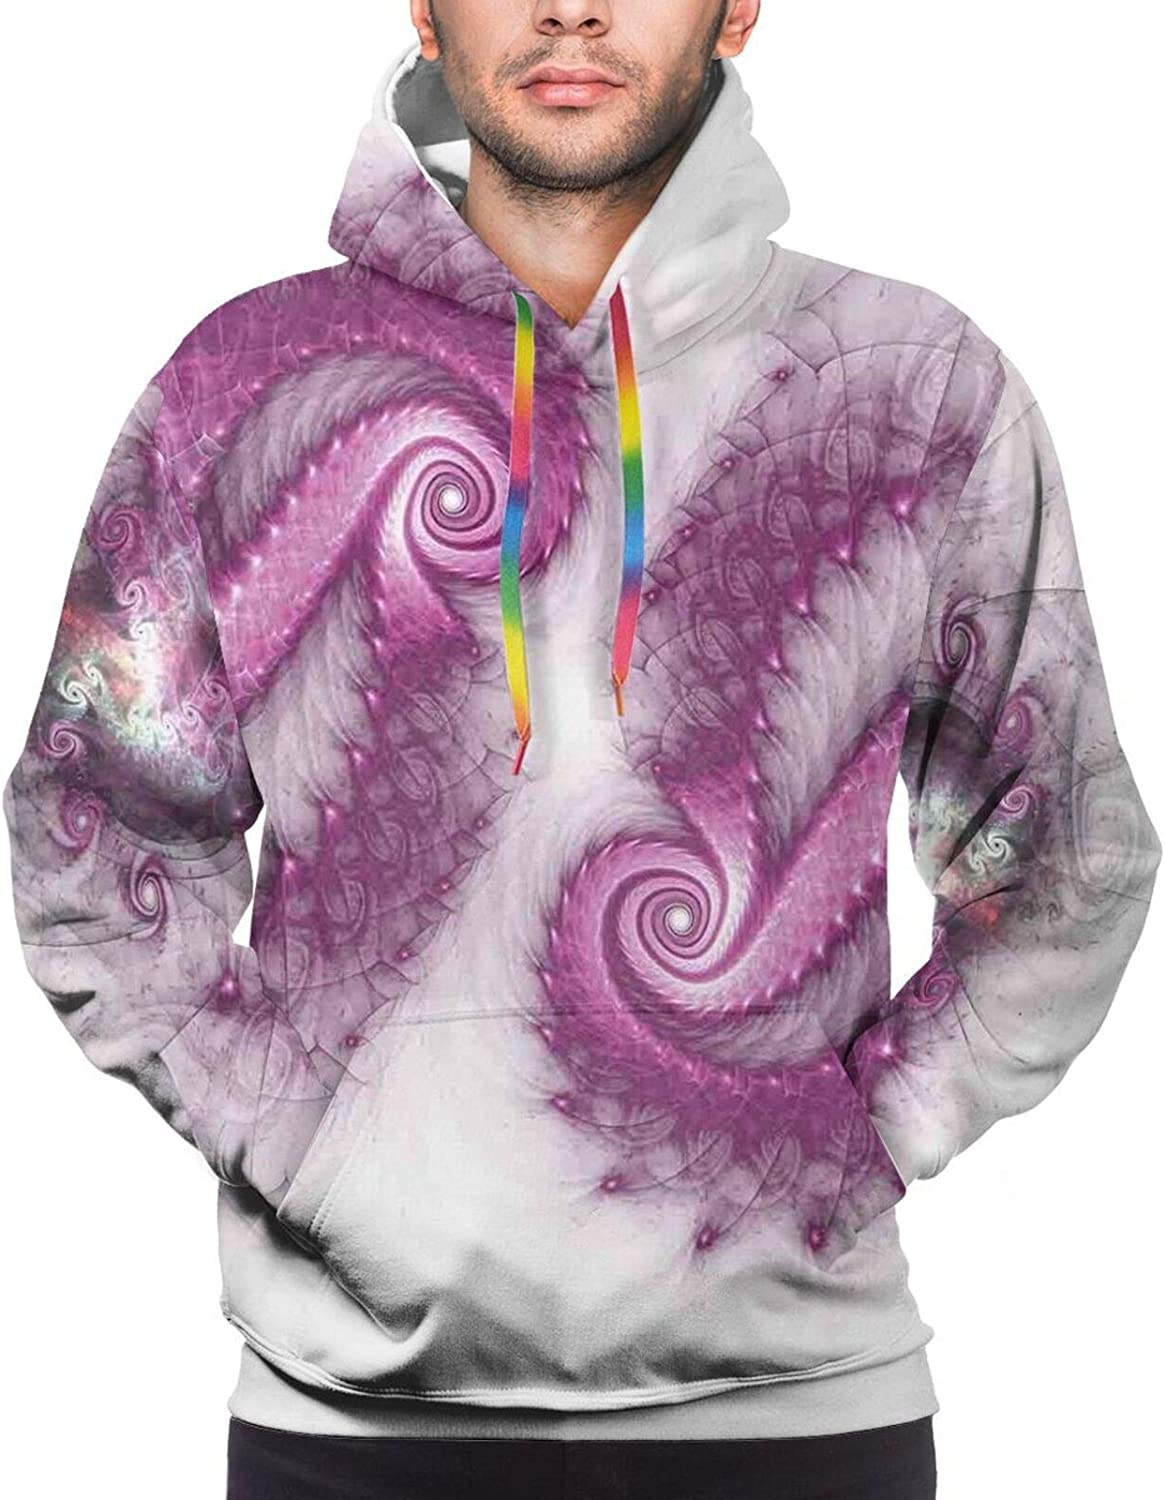 Men's Hoodies Sweatshirts,Psychedelic Complex Funky Pastel Patterns with Stars Back to 60s Style Retro Artsy